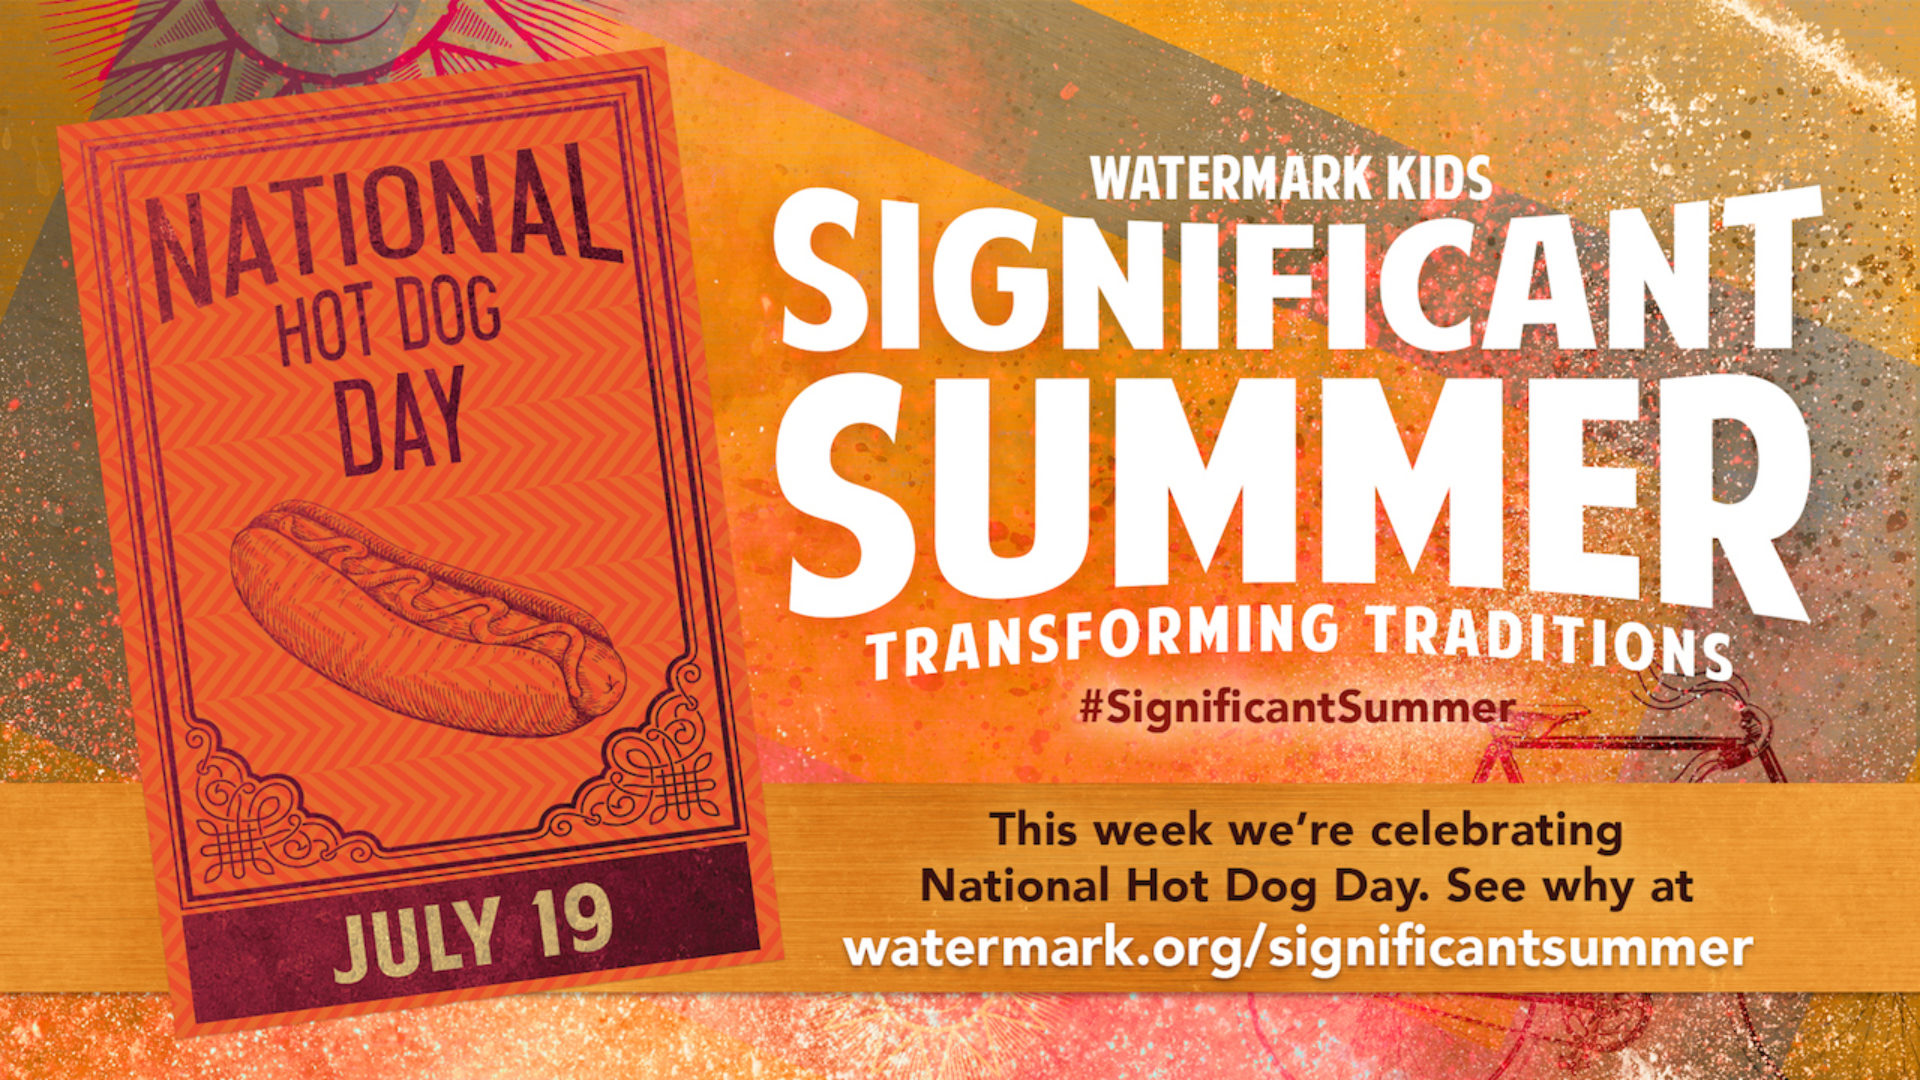 Significant Summer Week 7: National Hot Dog Day Hero Image